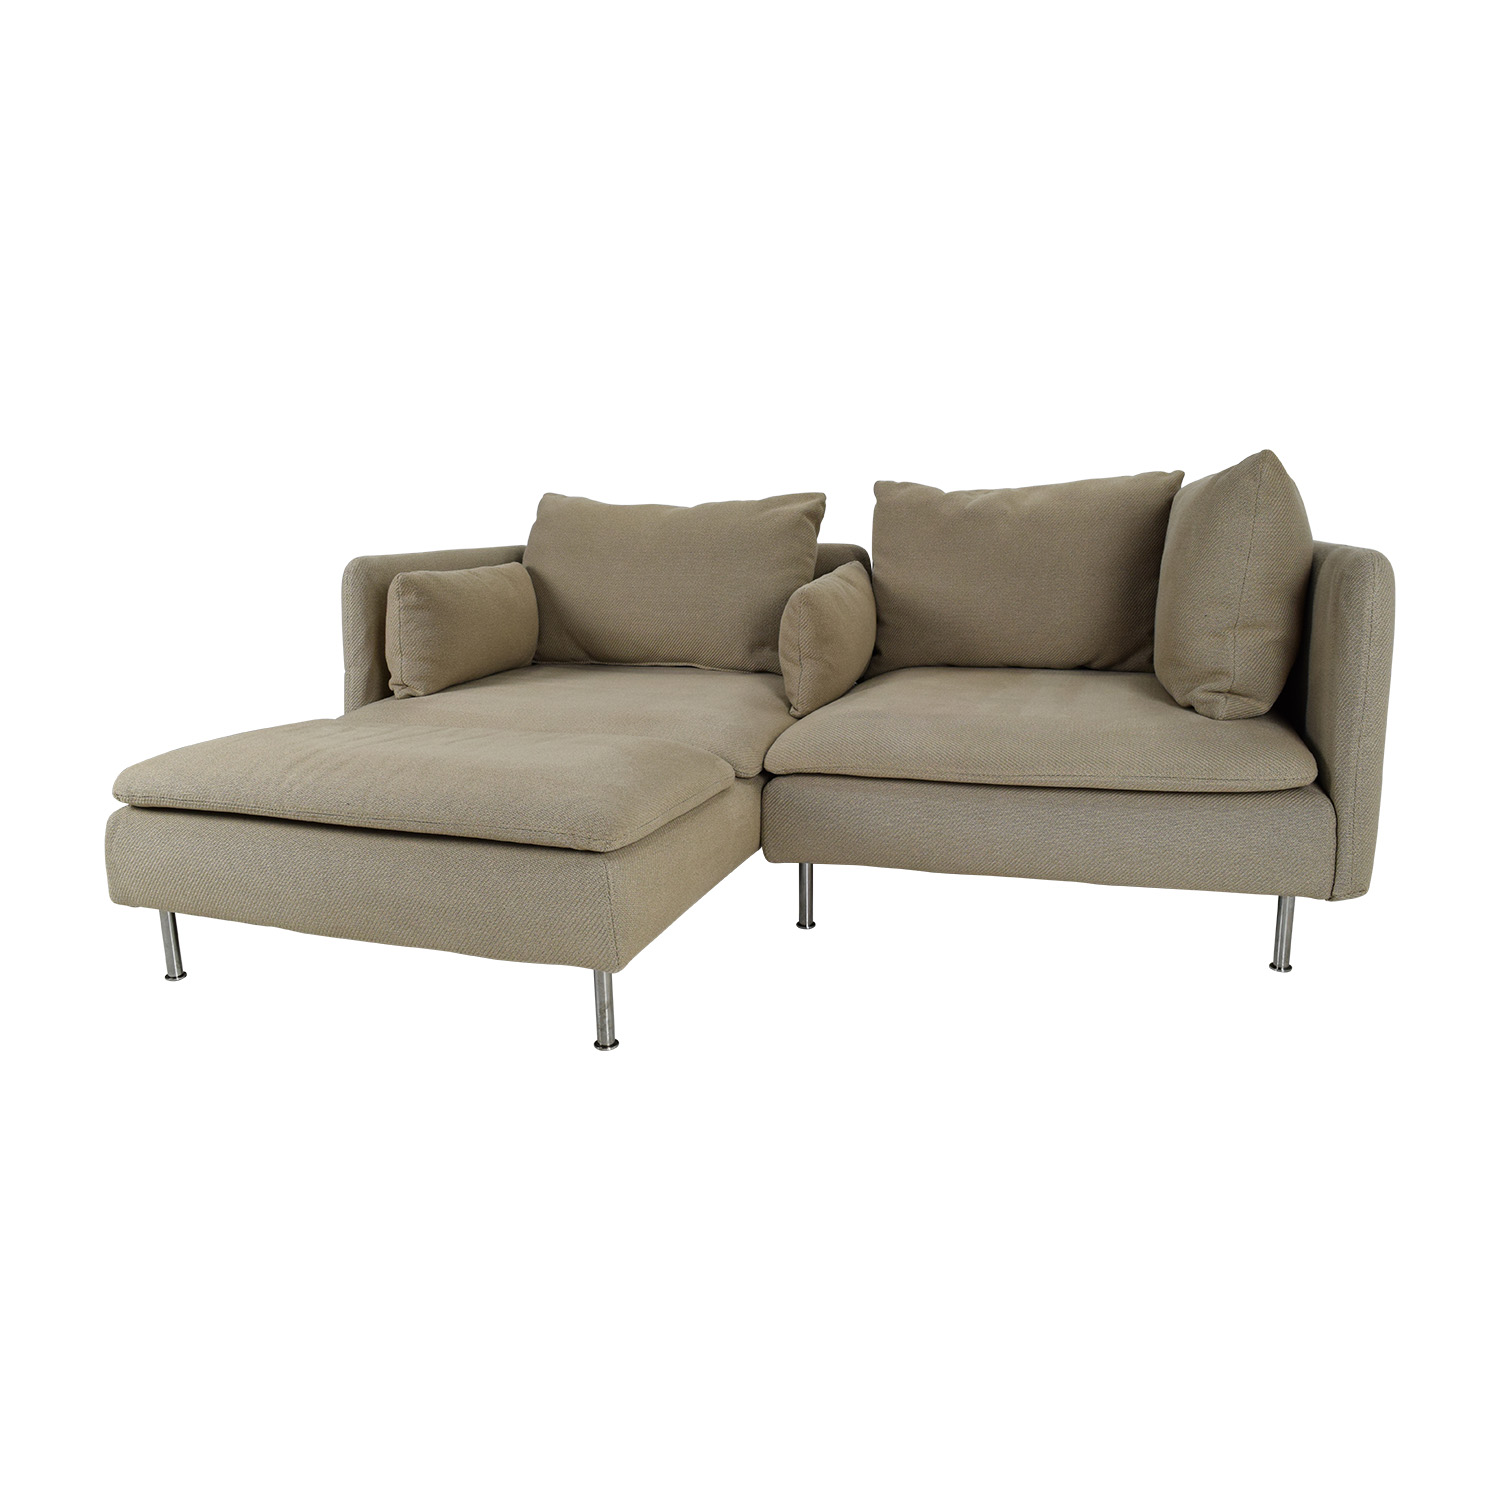 Sofa Online Purchase 50 Off Ikea Soderhamn Sectional Sofa Sofas